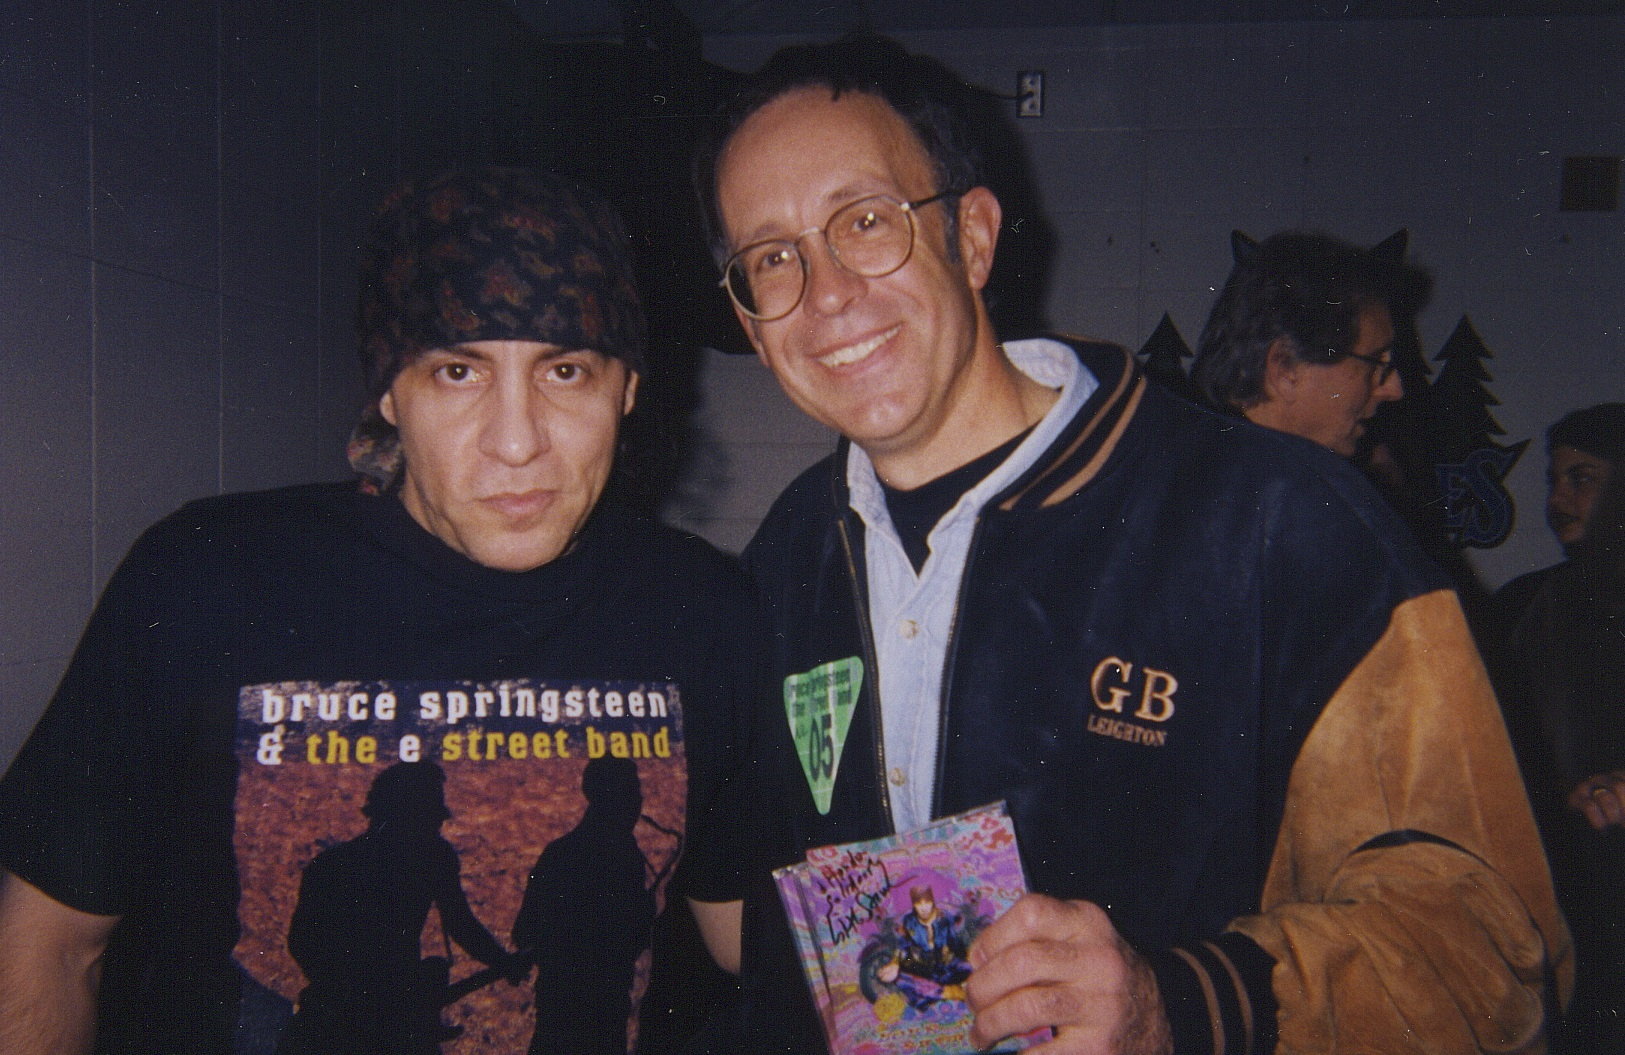 Hondo celebrity music Steve Van Zandt close-up 2 pose backstage Target Center '99.jpg